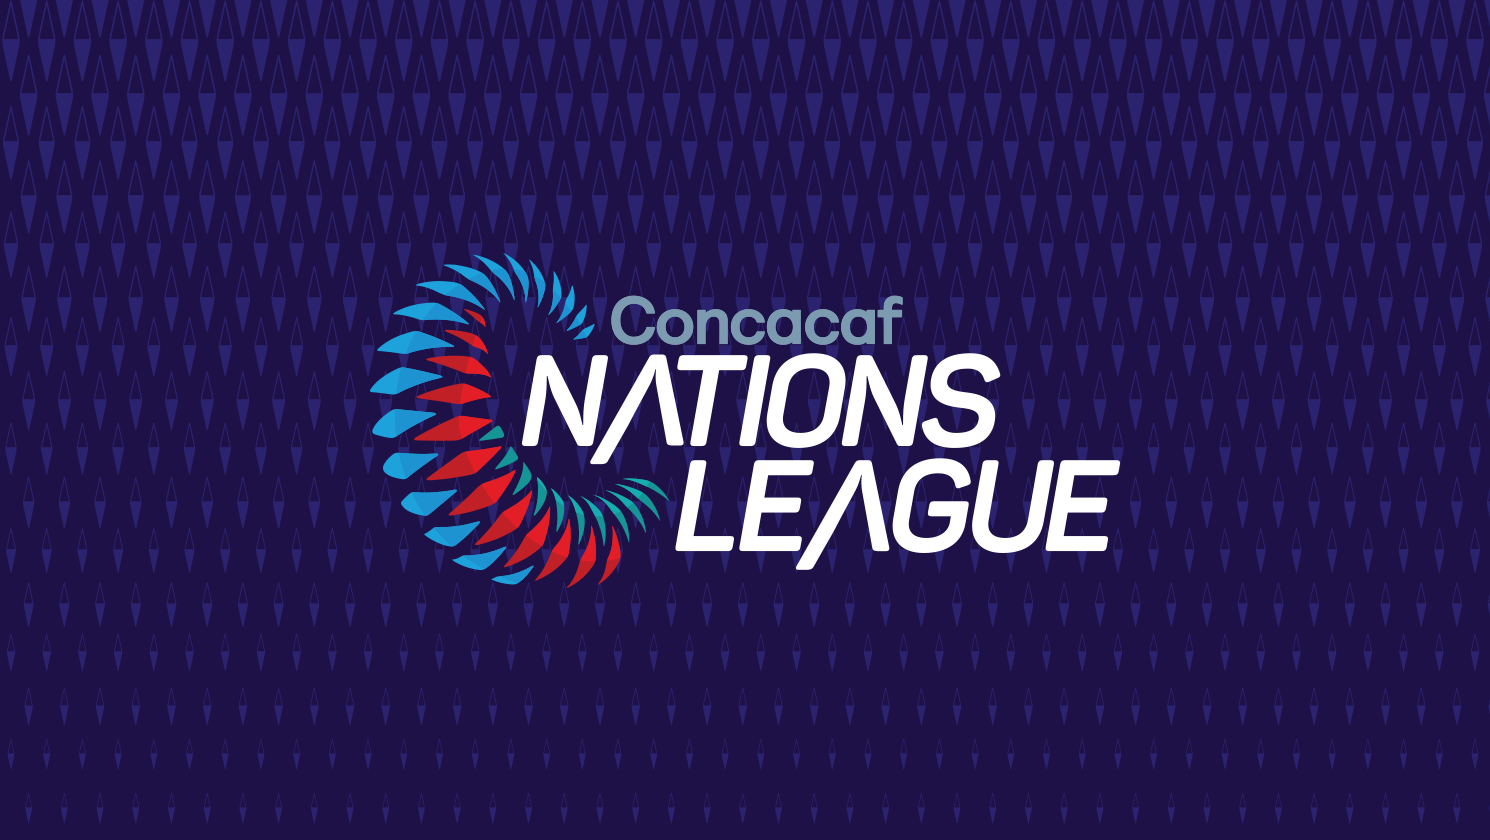 Schedule Confirmed for Last Round of Concacaf Nations League Group Stage Matches